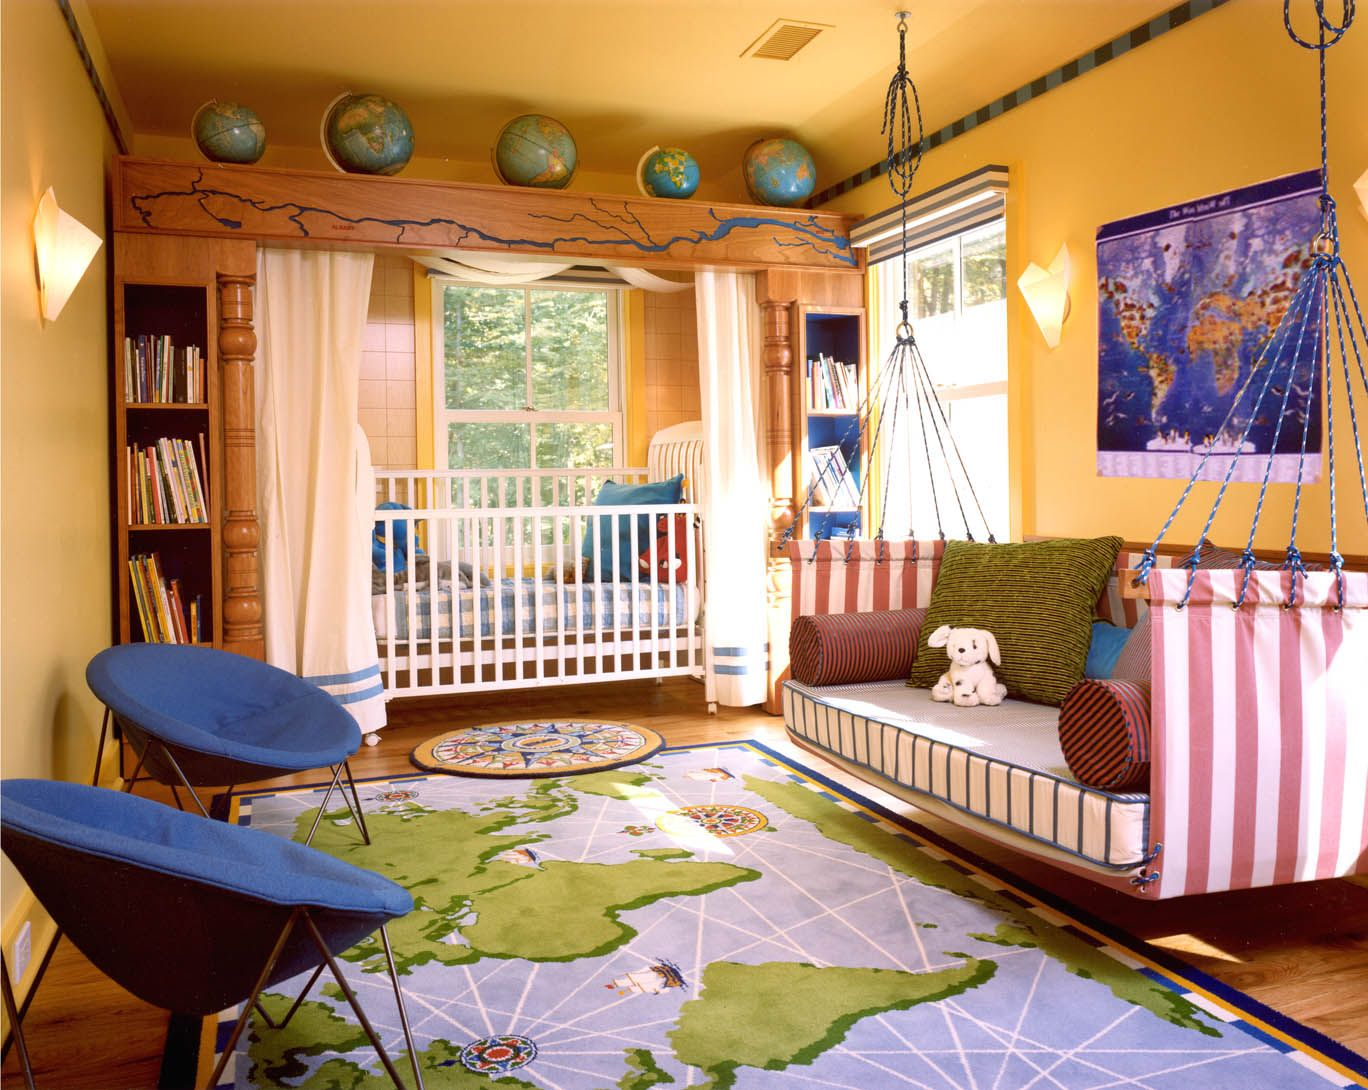 Nice Kids Room Decor Ideas With Example Pics Hanging Beds - Kids bedroom